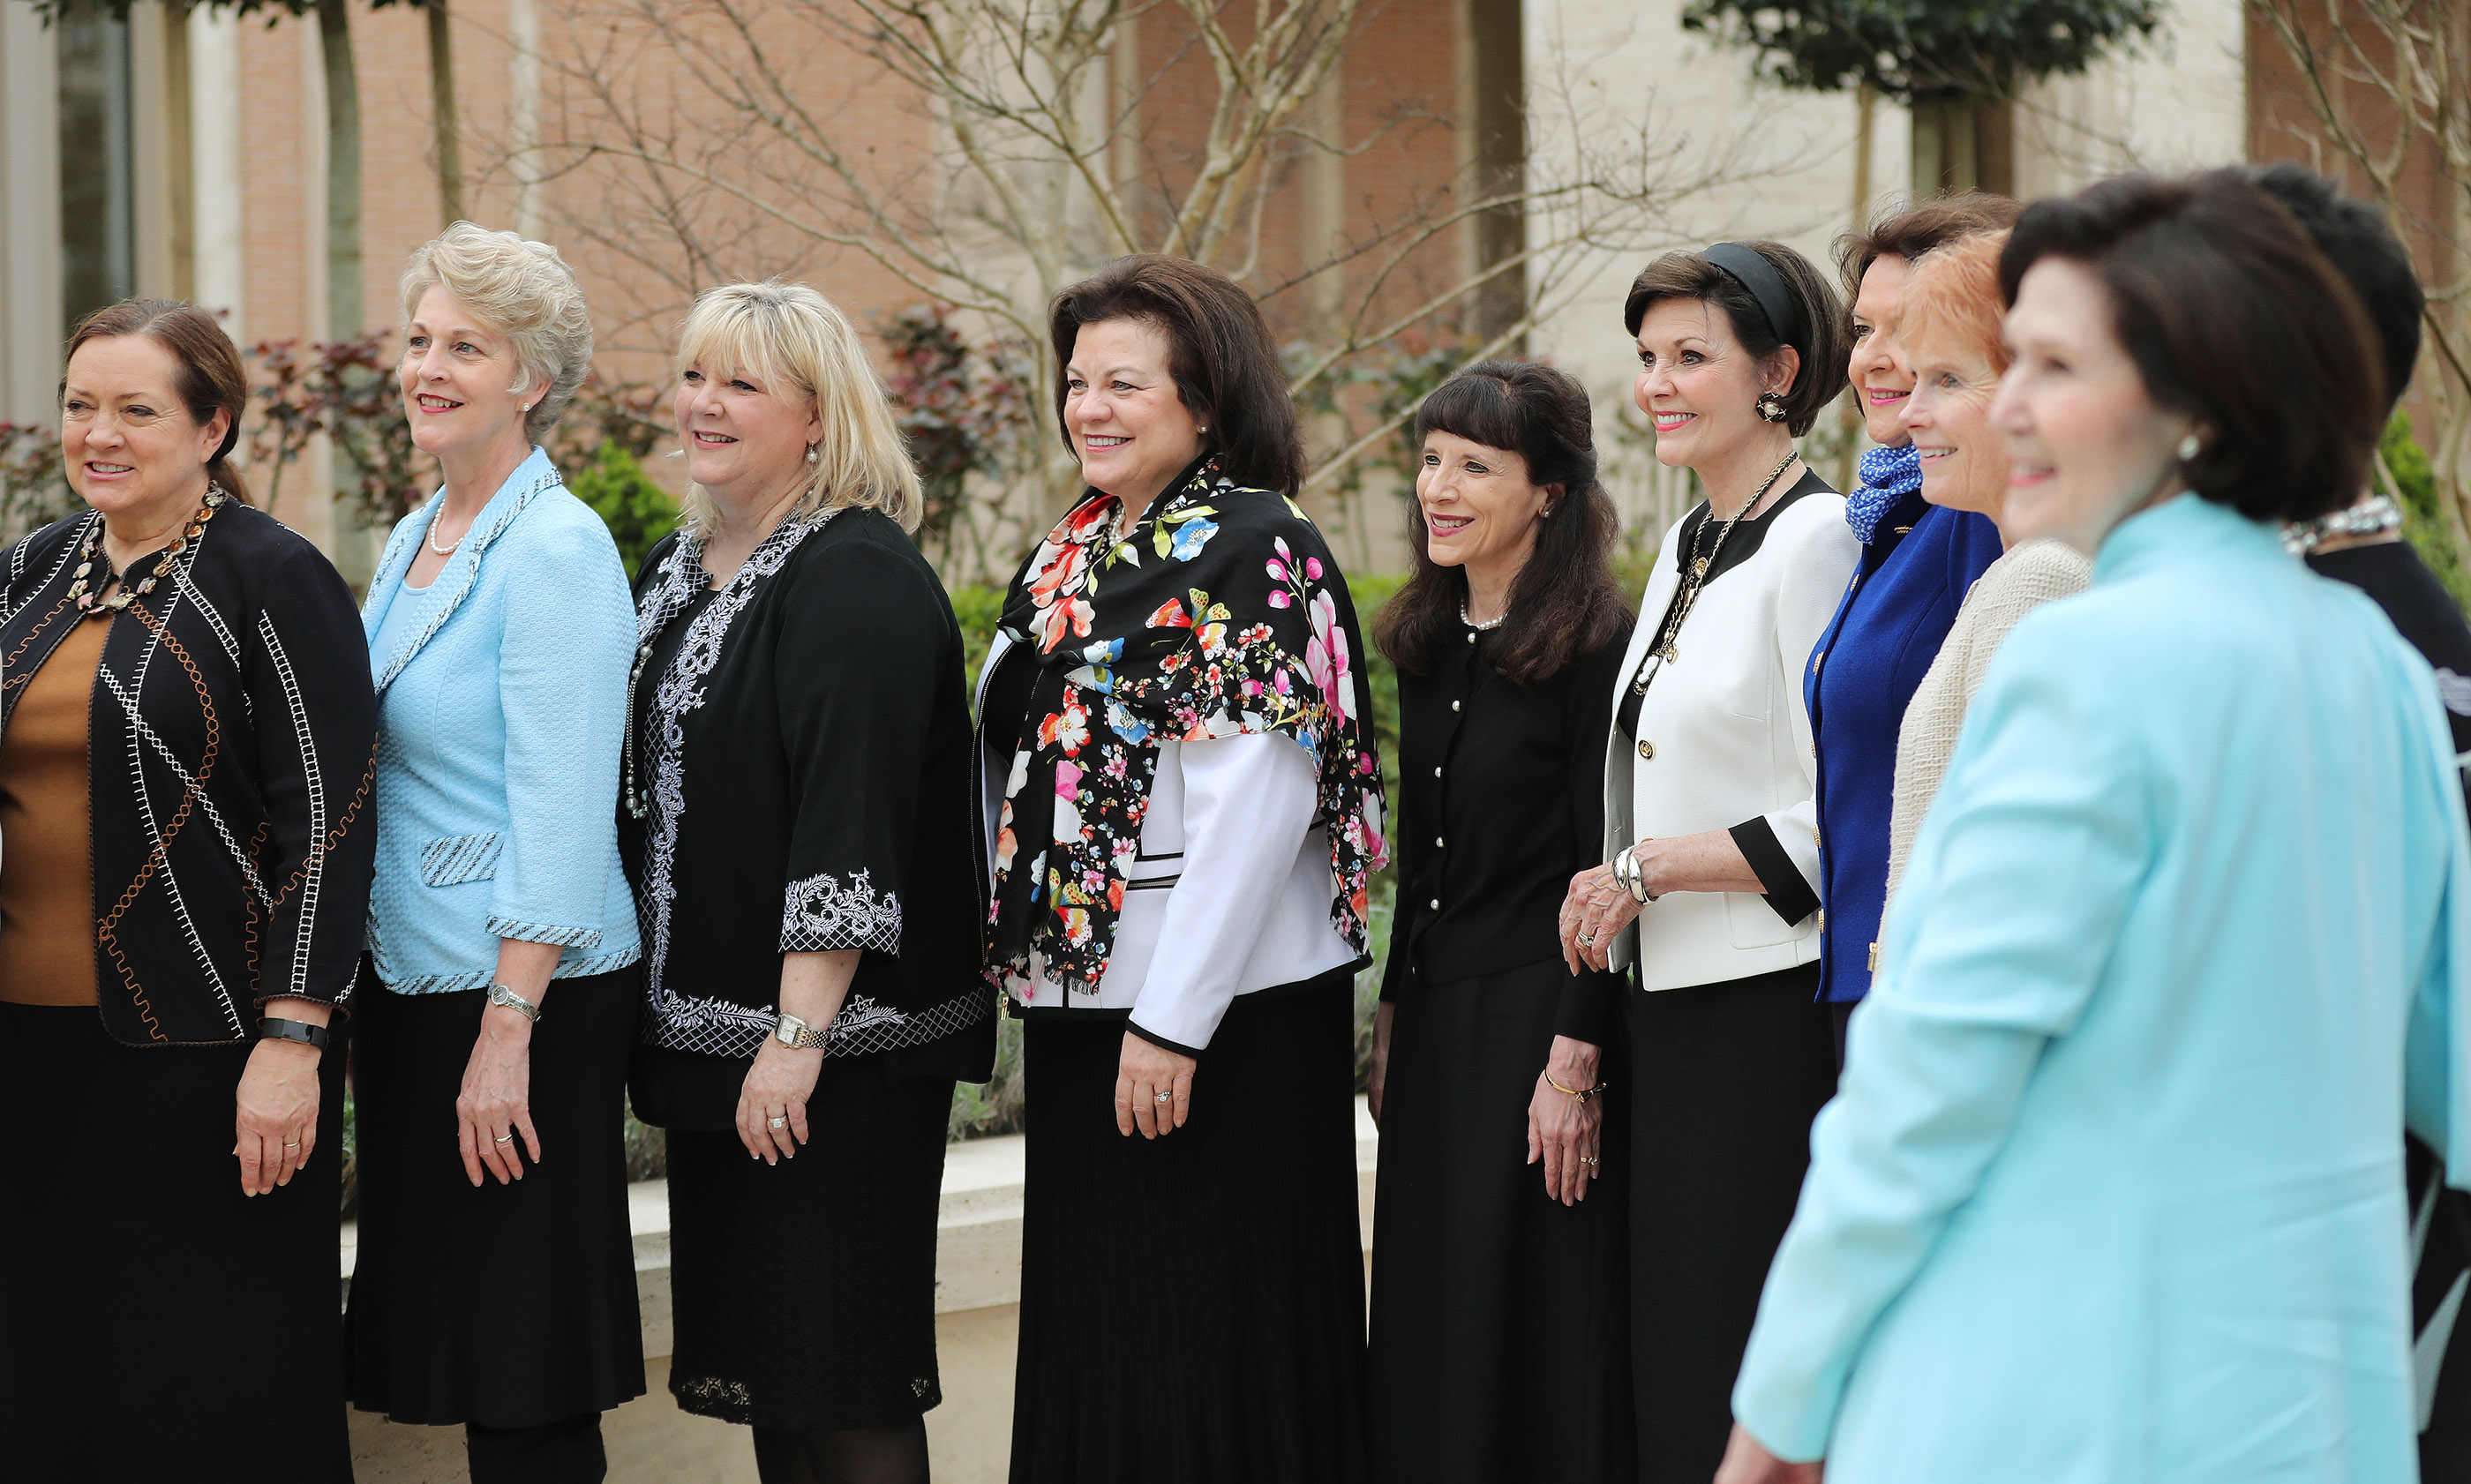 Sister Rosana Soares, Sister Susan Gong, Sister Ruth Renlund, Sister Lesa Stevenson, Sister Melanie Rasband, Sister Kathy Andersen, Sister Kristen Oaks, Sister Wendy Nelson, Sister Kathy Christofferson, Sister Mary Cook, Sister Susan Bednar, Sister Harriet Uchtdorf and Sister Patricia Holland pose for a photograph near the Rome Italy Temple visitors' center in Rome, Italy on Monday, March 11, 2019.